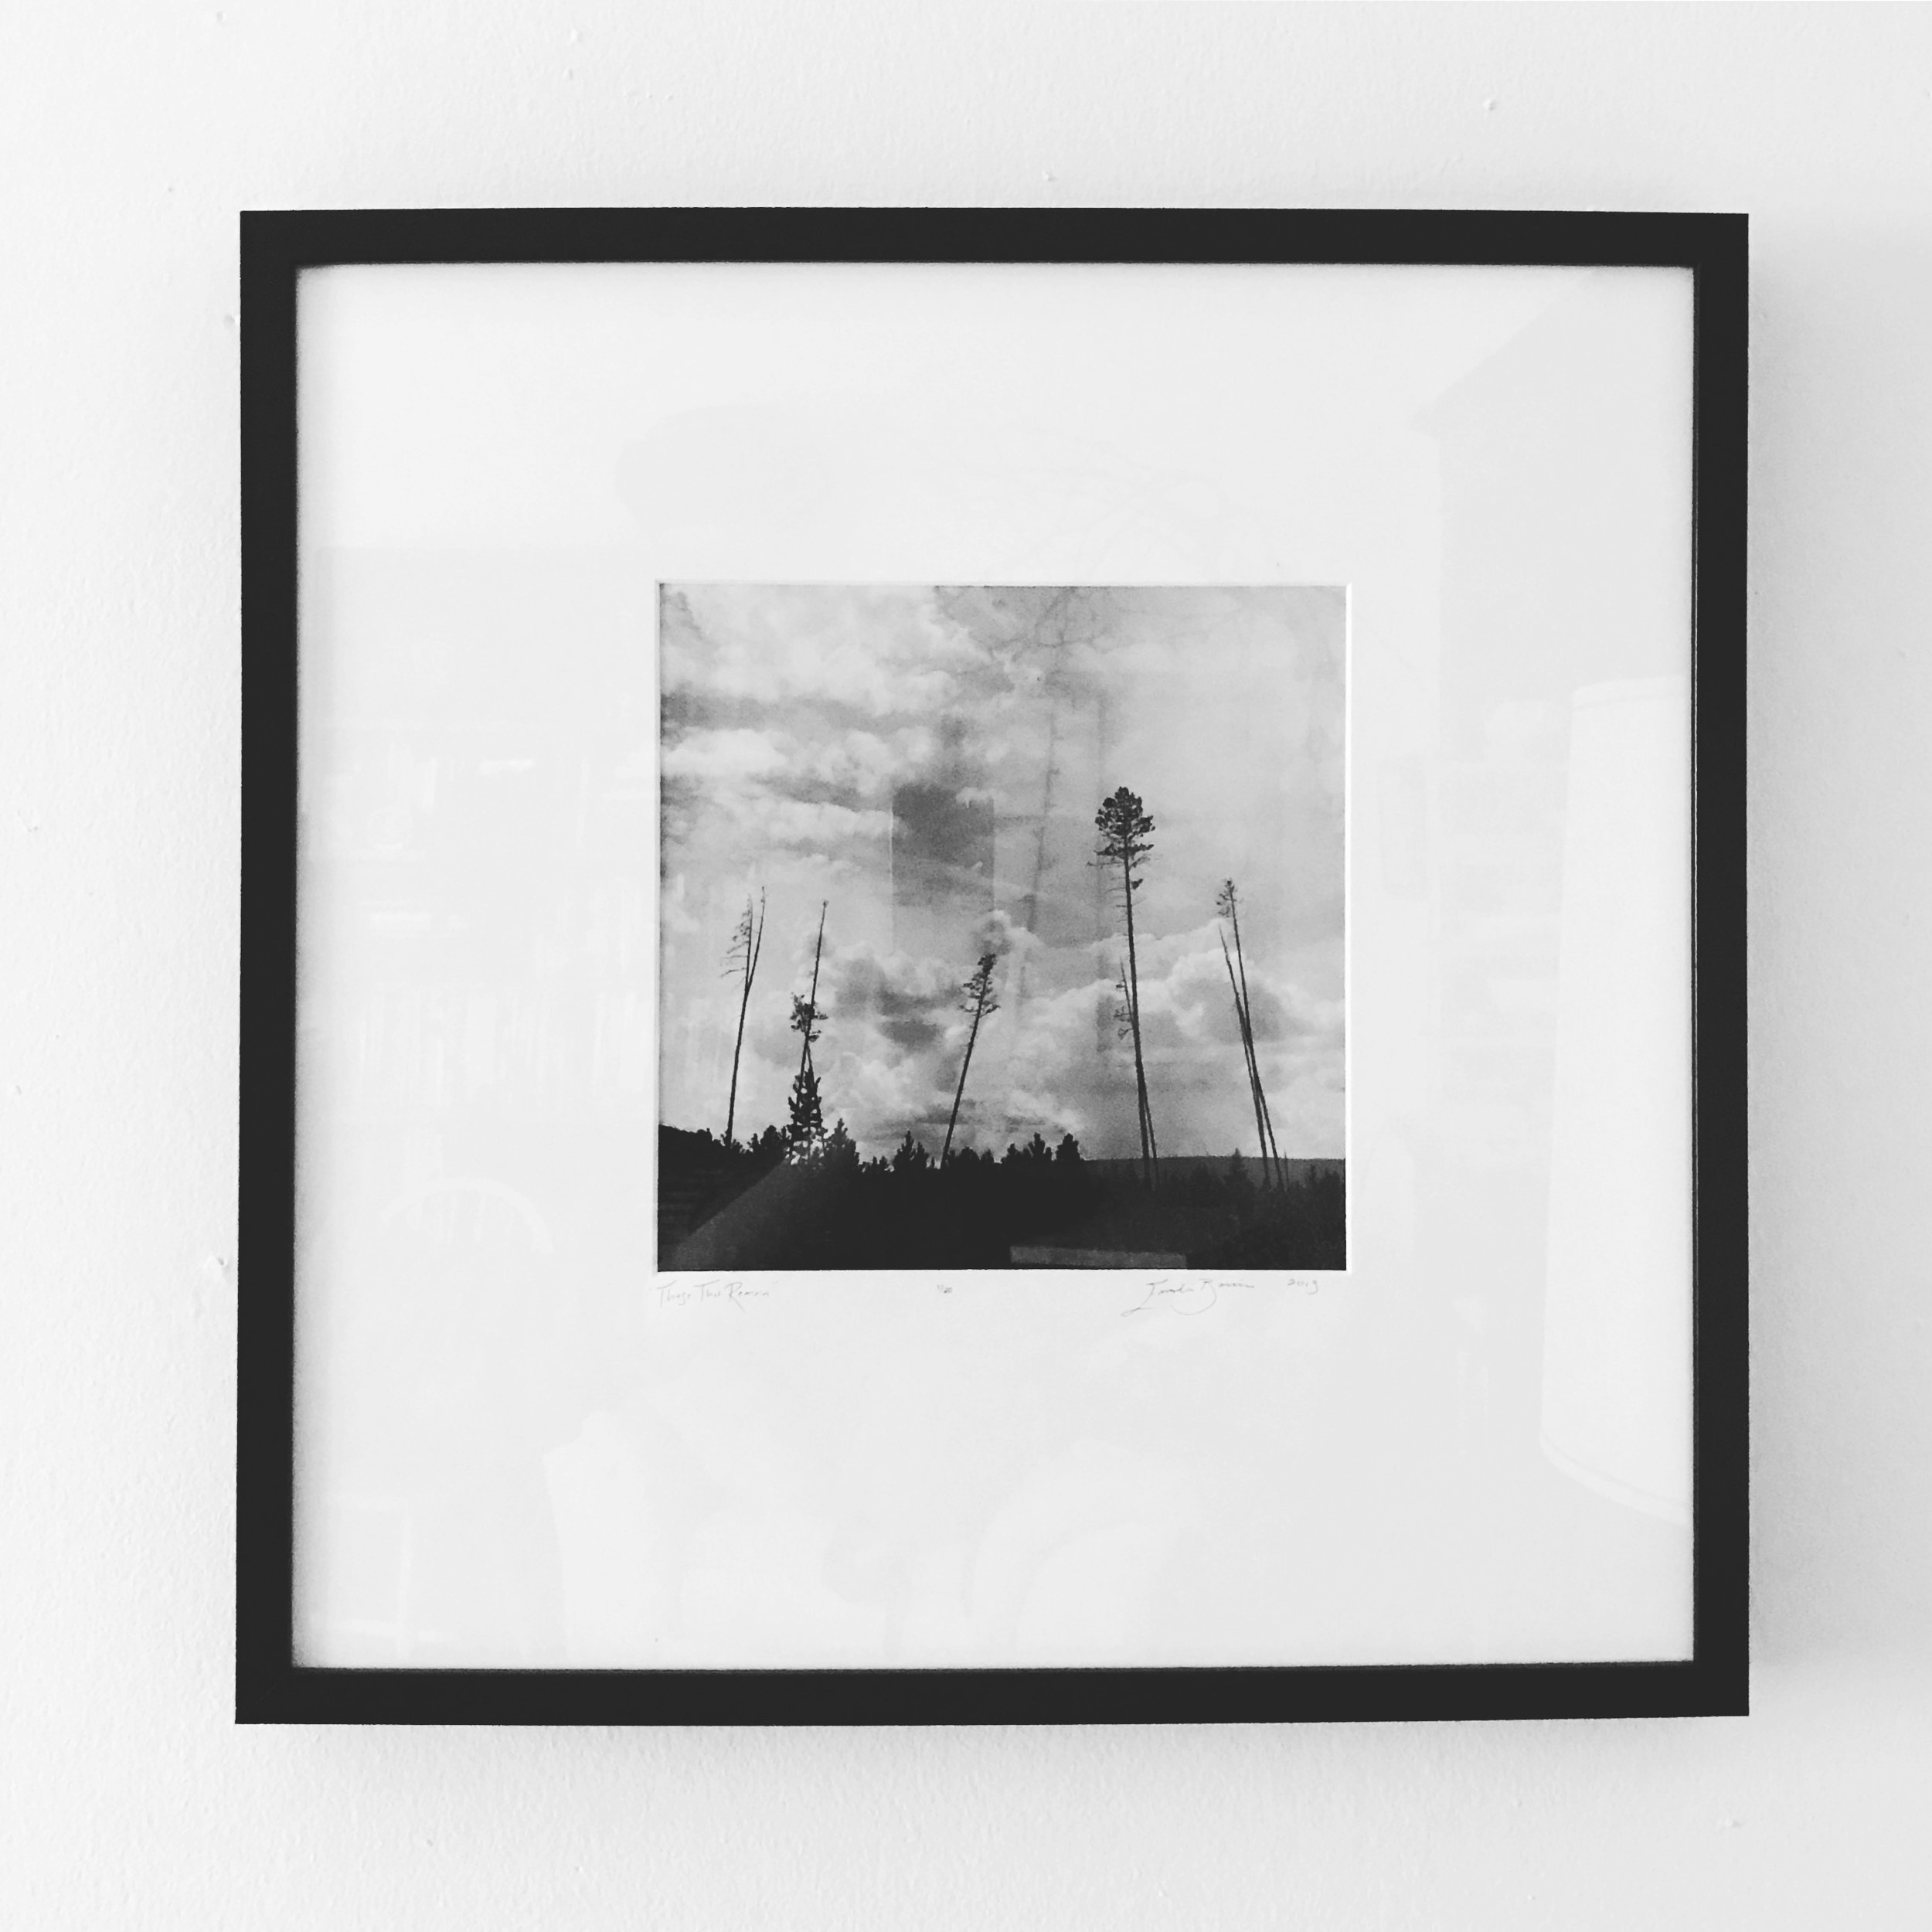 "Those That Remain   Photo gelatin print  Edition of 20 prints  10"" x 10"" print, in a 20"" x 20"" frame and archival matte  SALE!: $150 (Originally $215)"